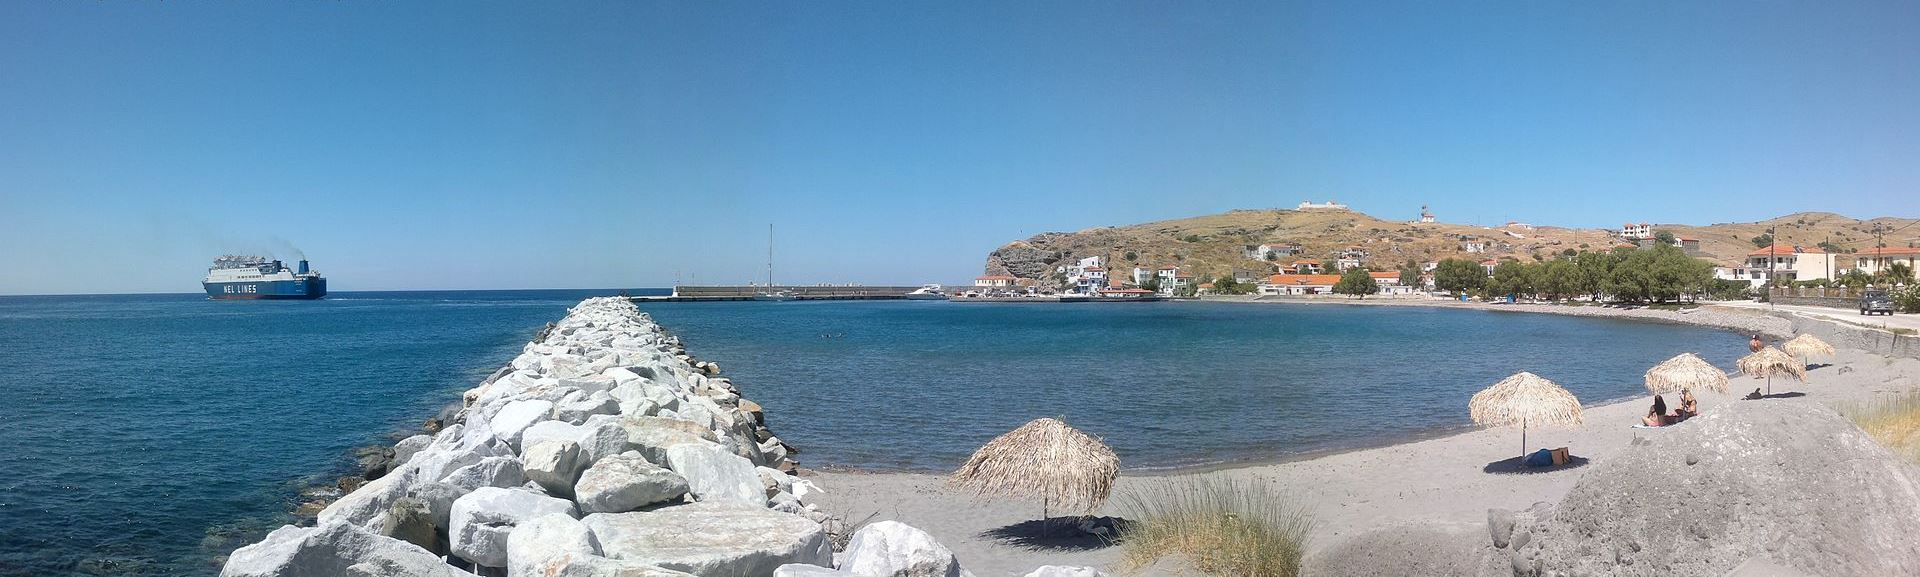 Another view of the harbour of Agios Efstratios